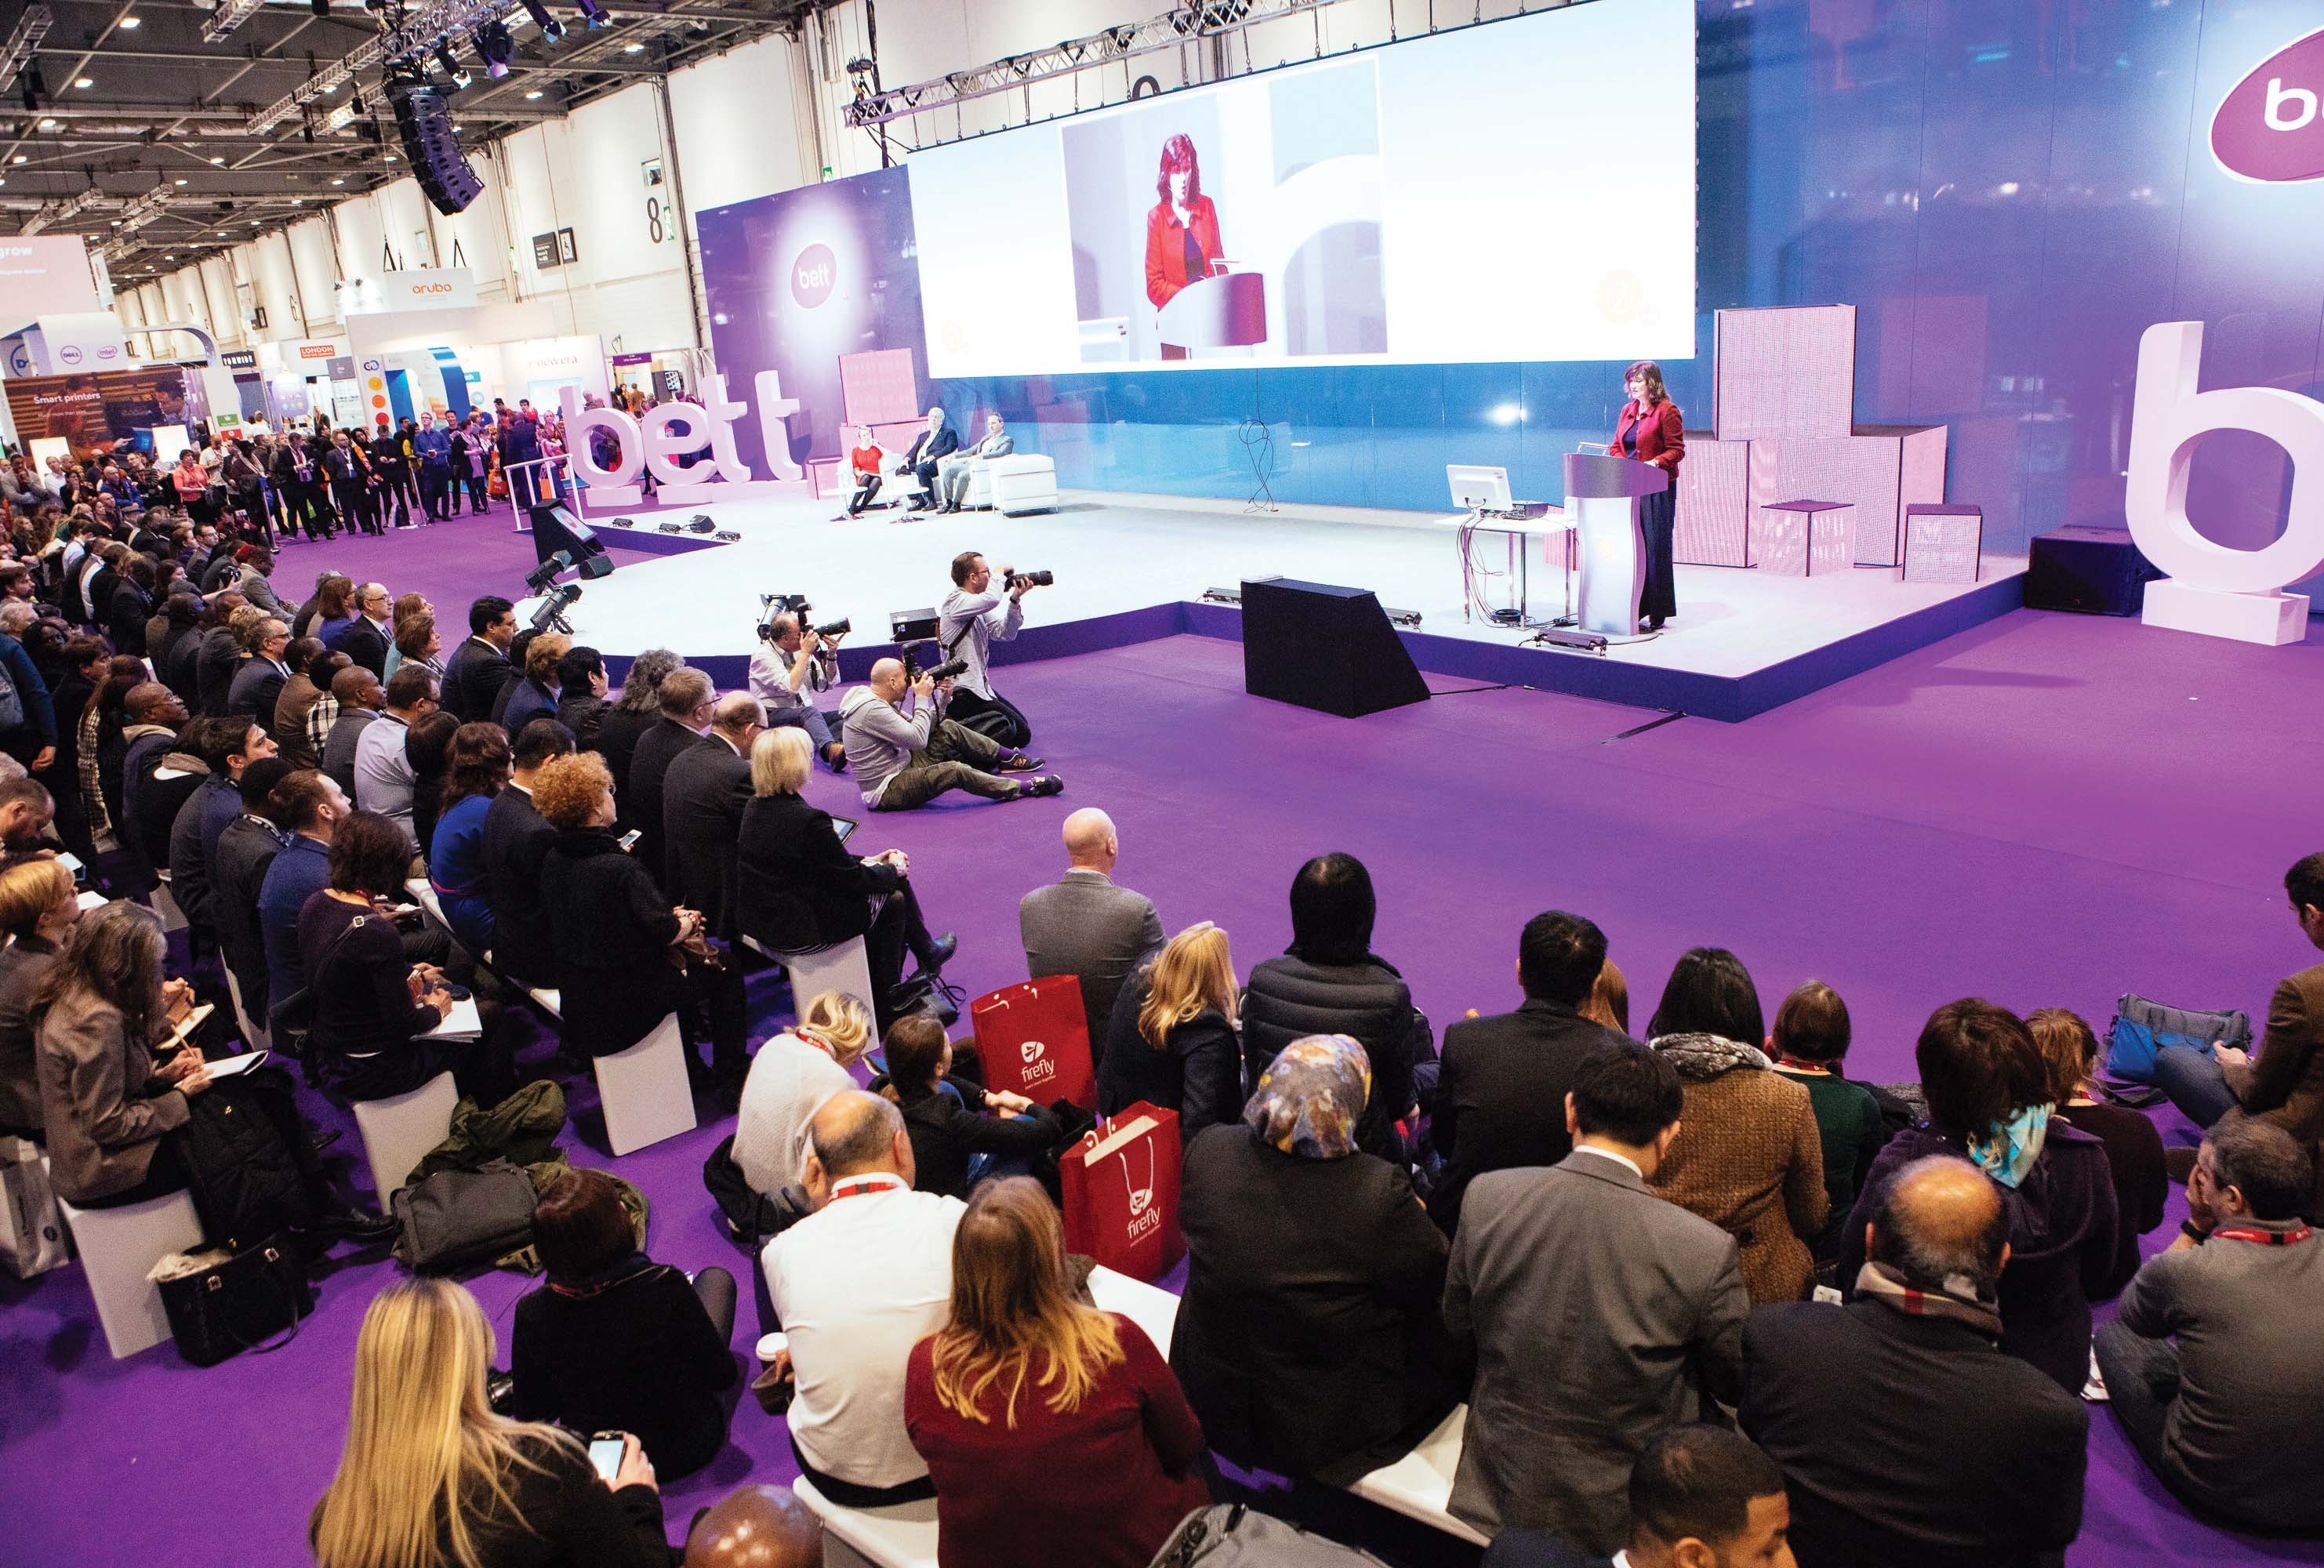 Attendees listening to speaker at Bett Conference